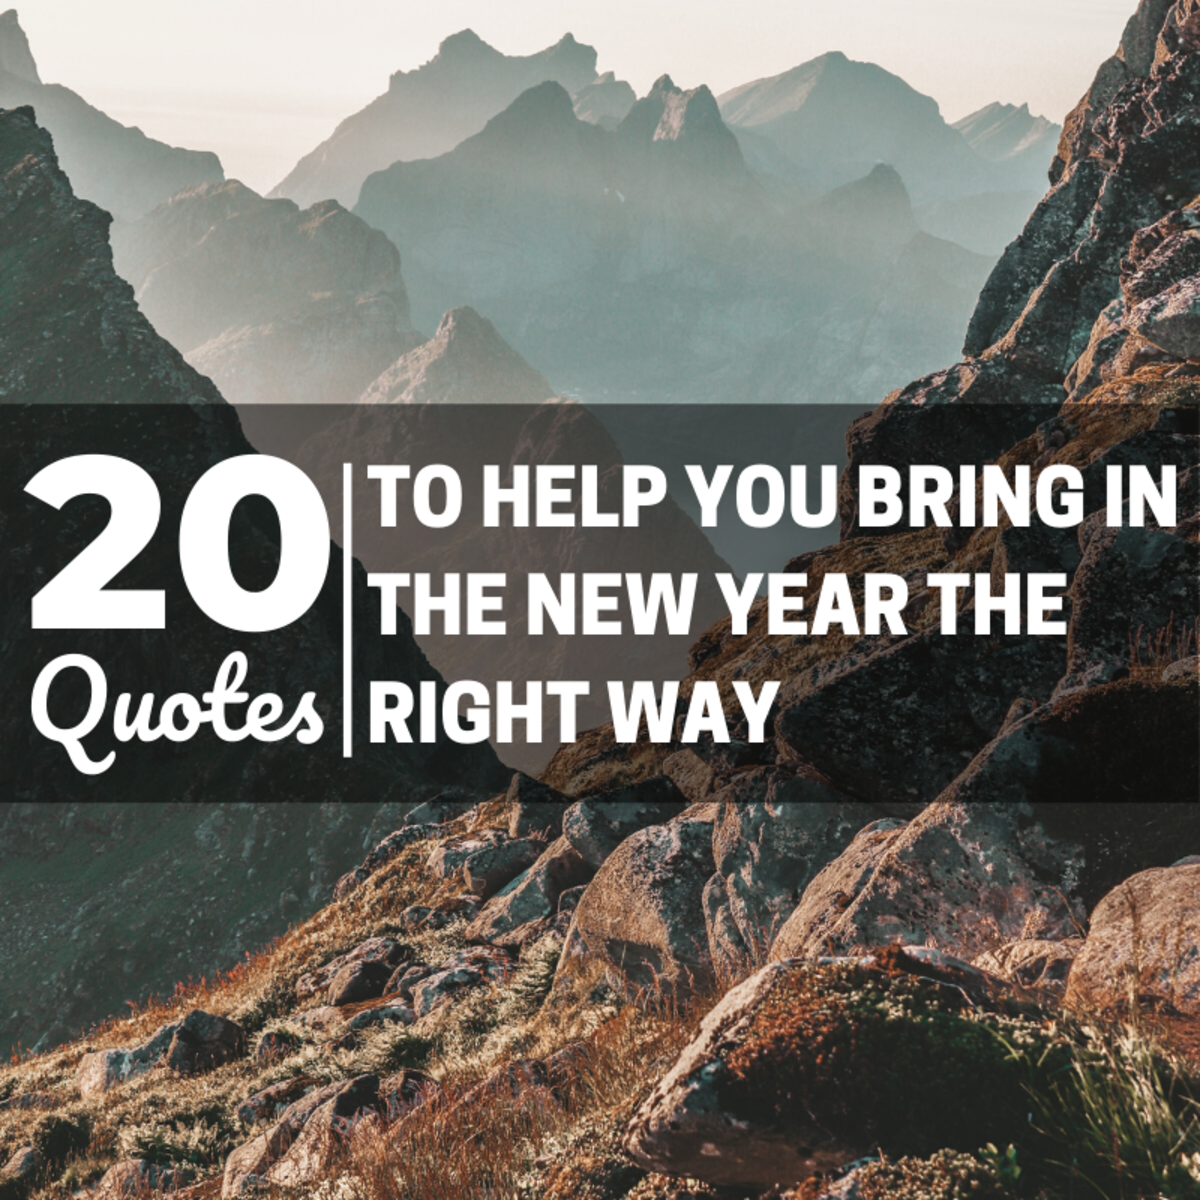 How do you want to usher in the new year?